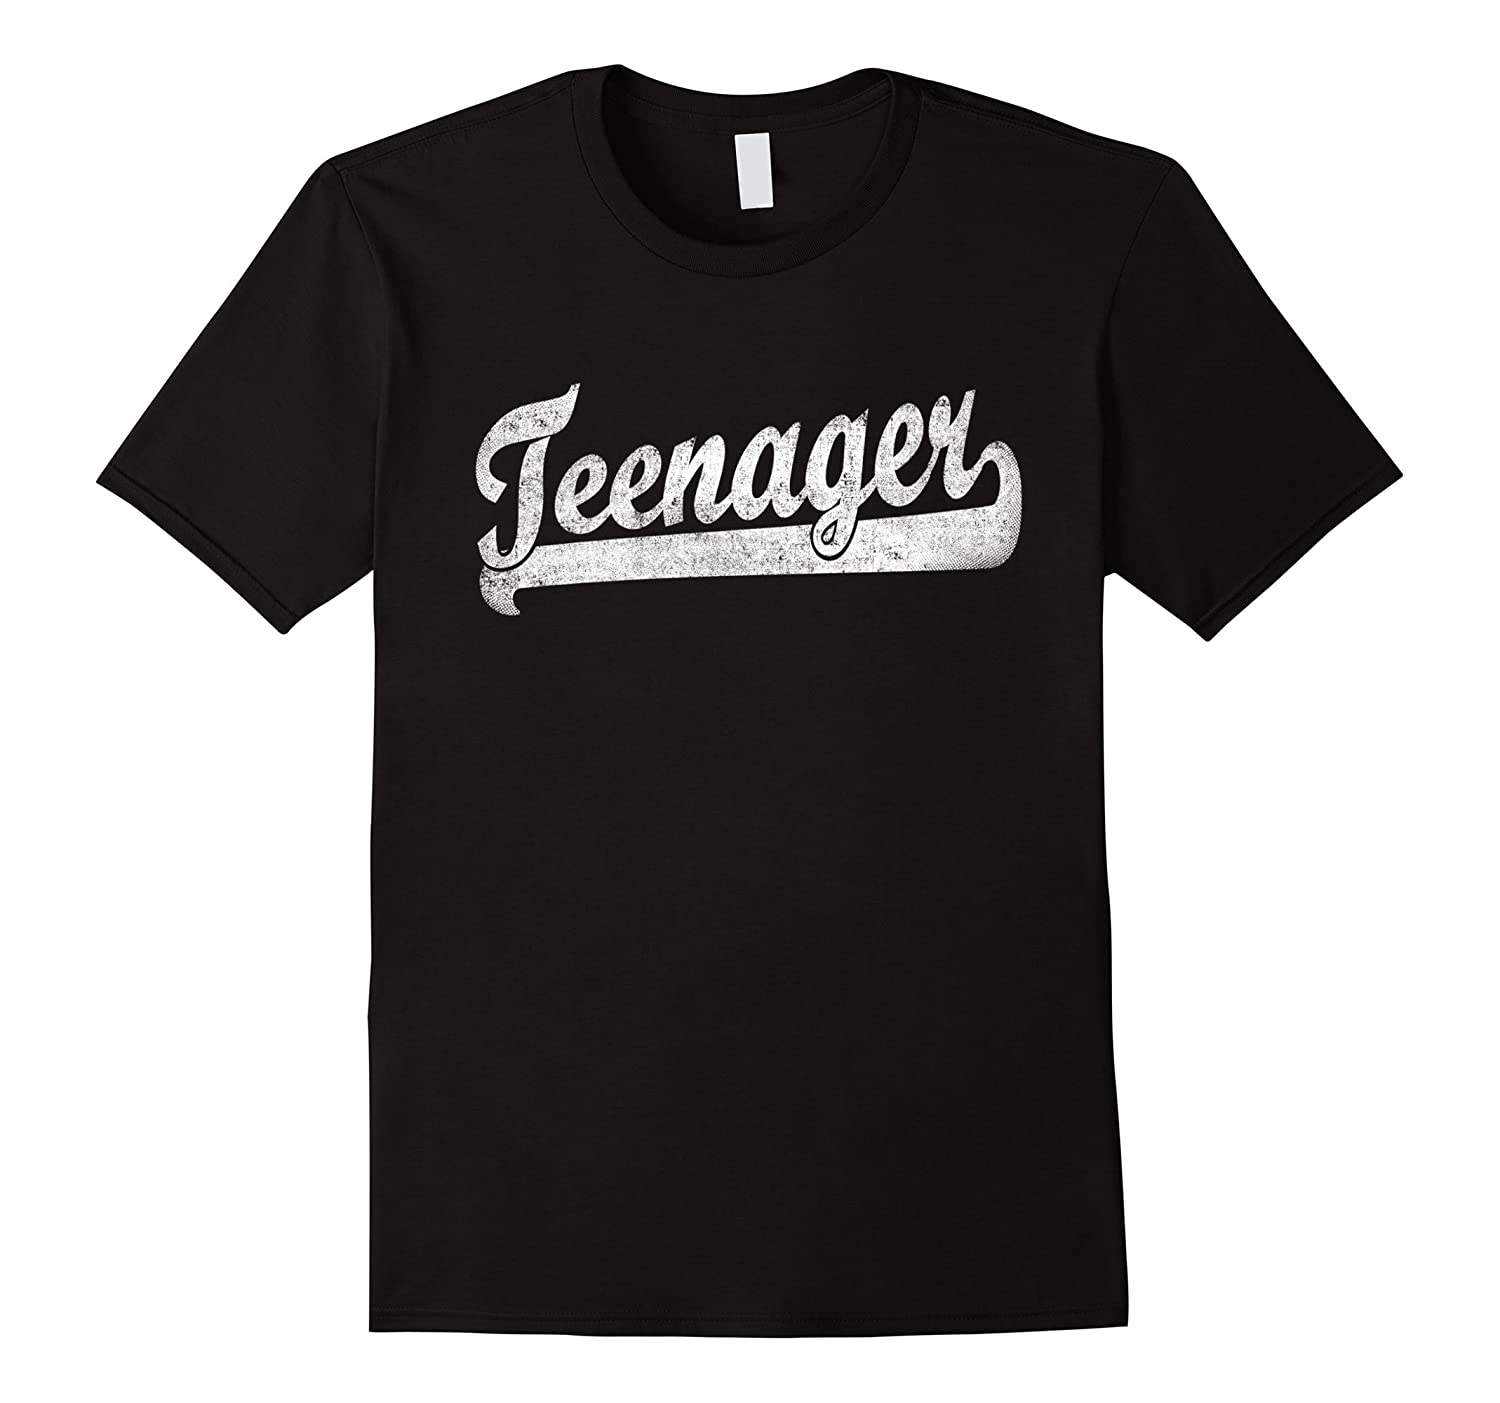 13th Birthday Shirt Teenager For Girls Or Boy TH